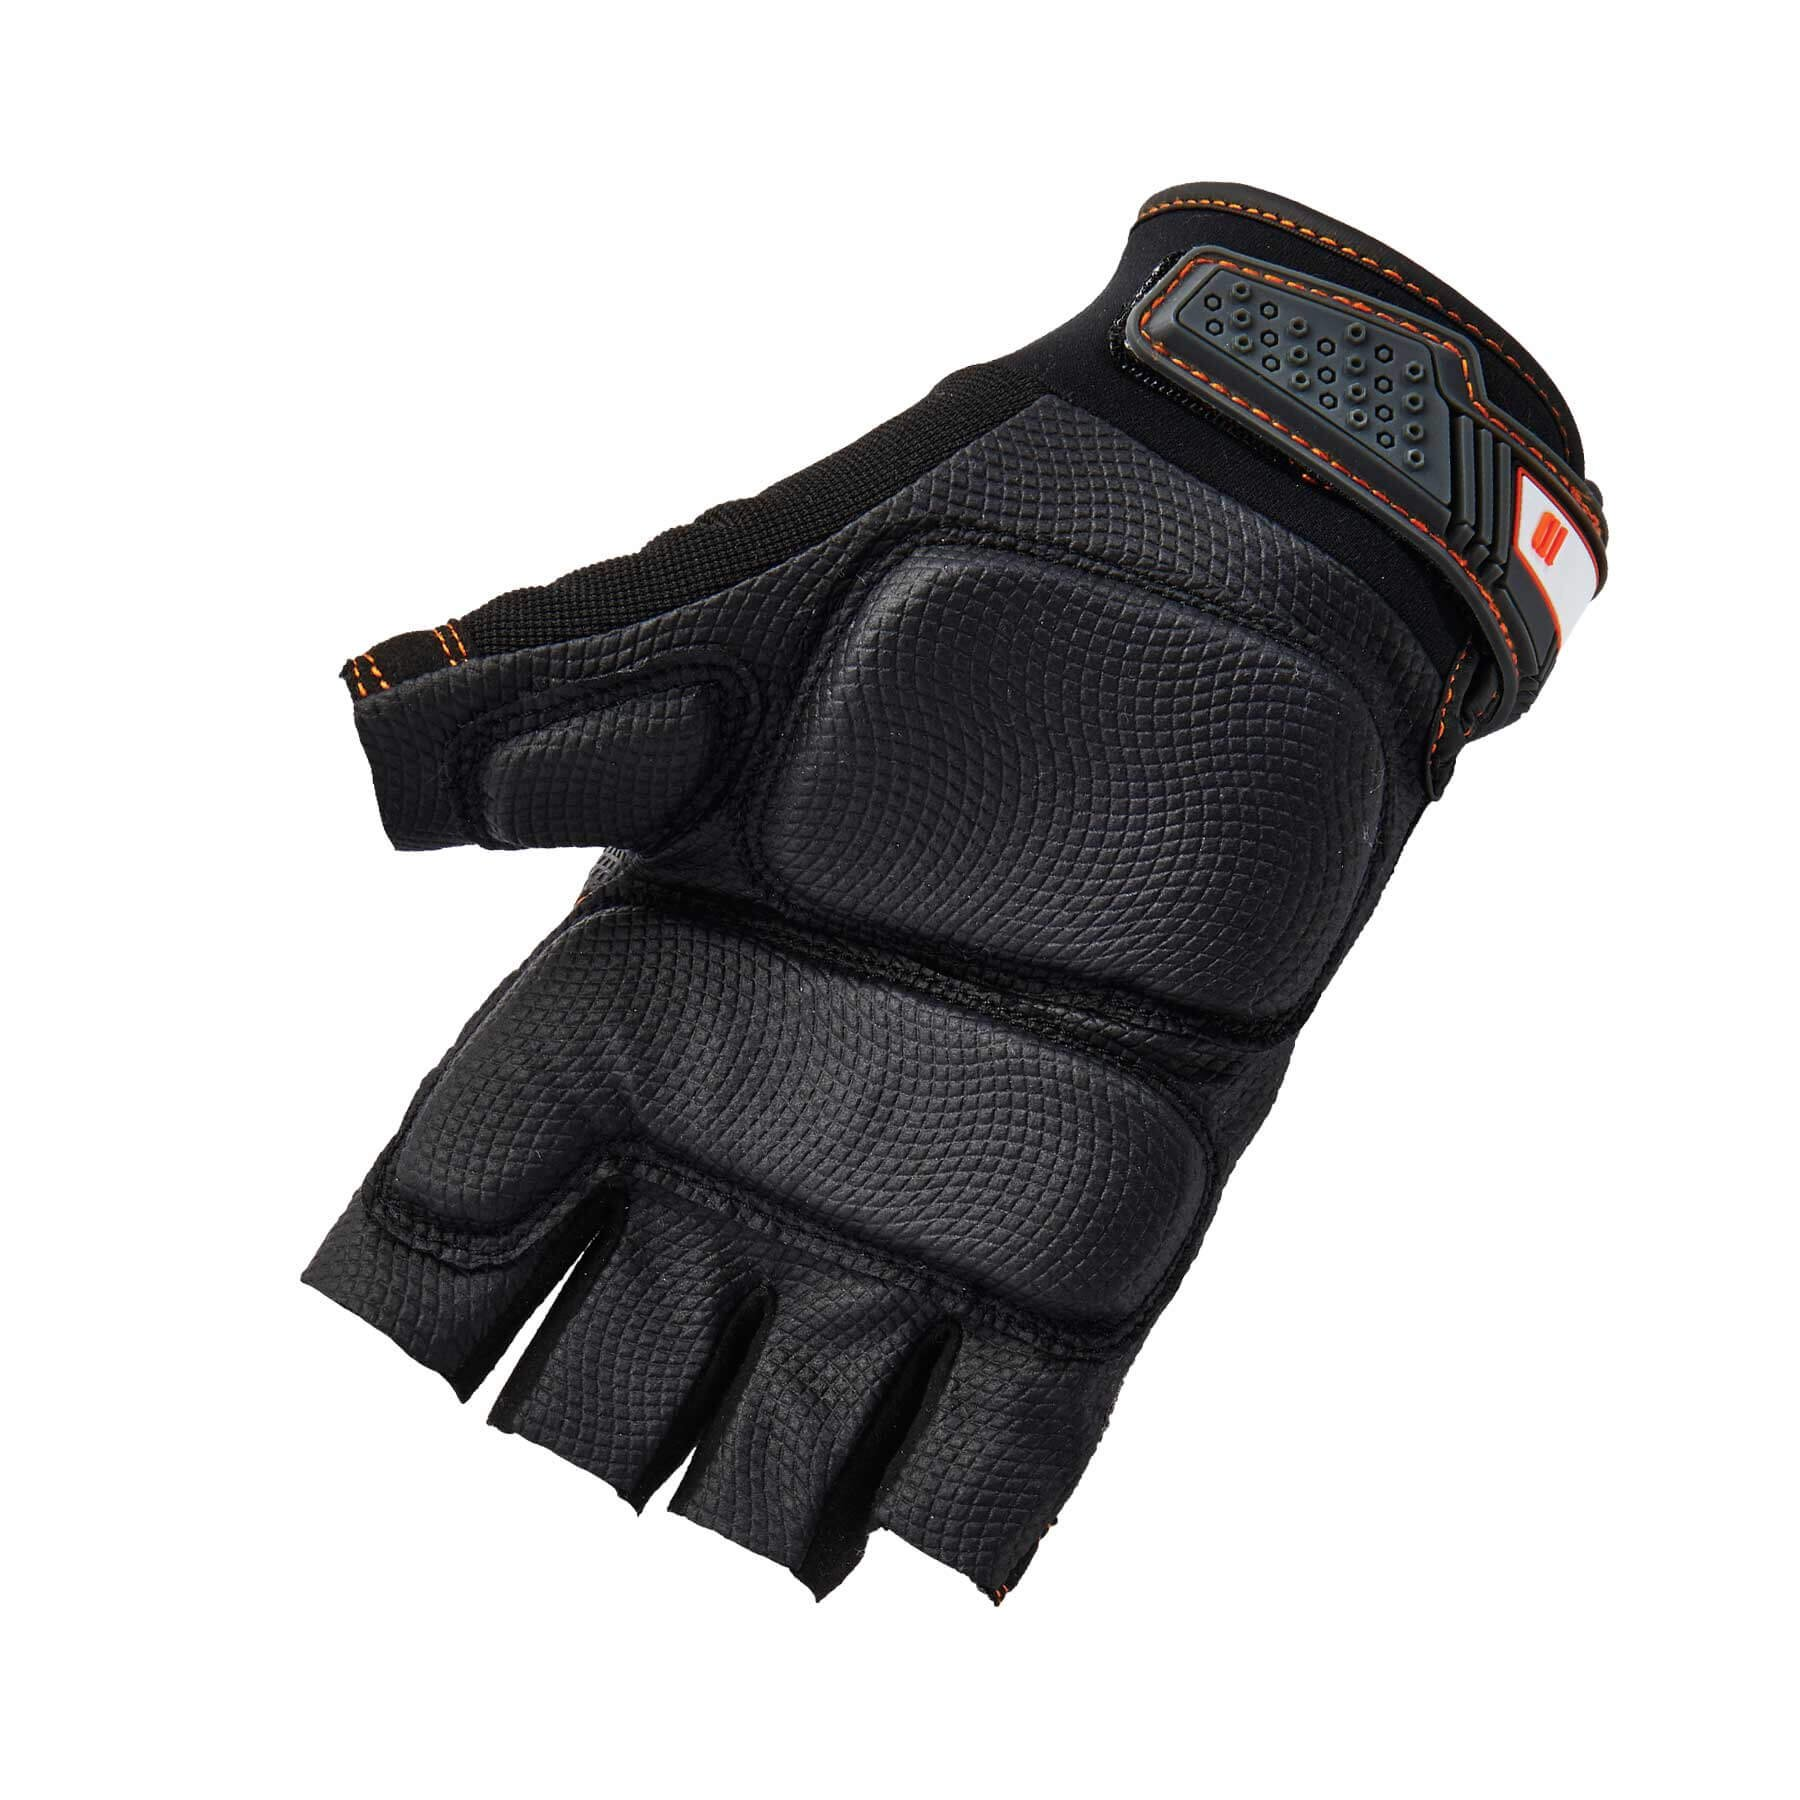 Ergodyne ProFlex 900 Impact Protection Work Gloves, Padded Palm, Half-Finger, X-Large by Ergodyne (Image #3)